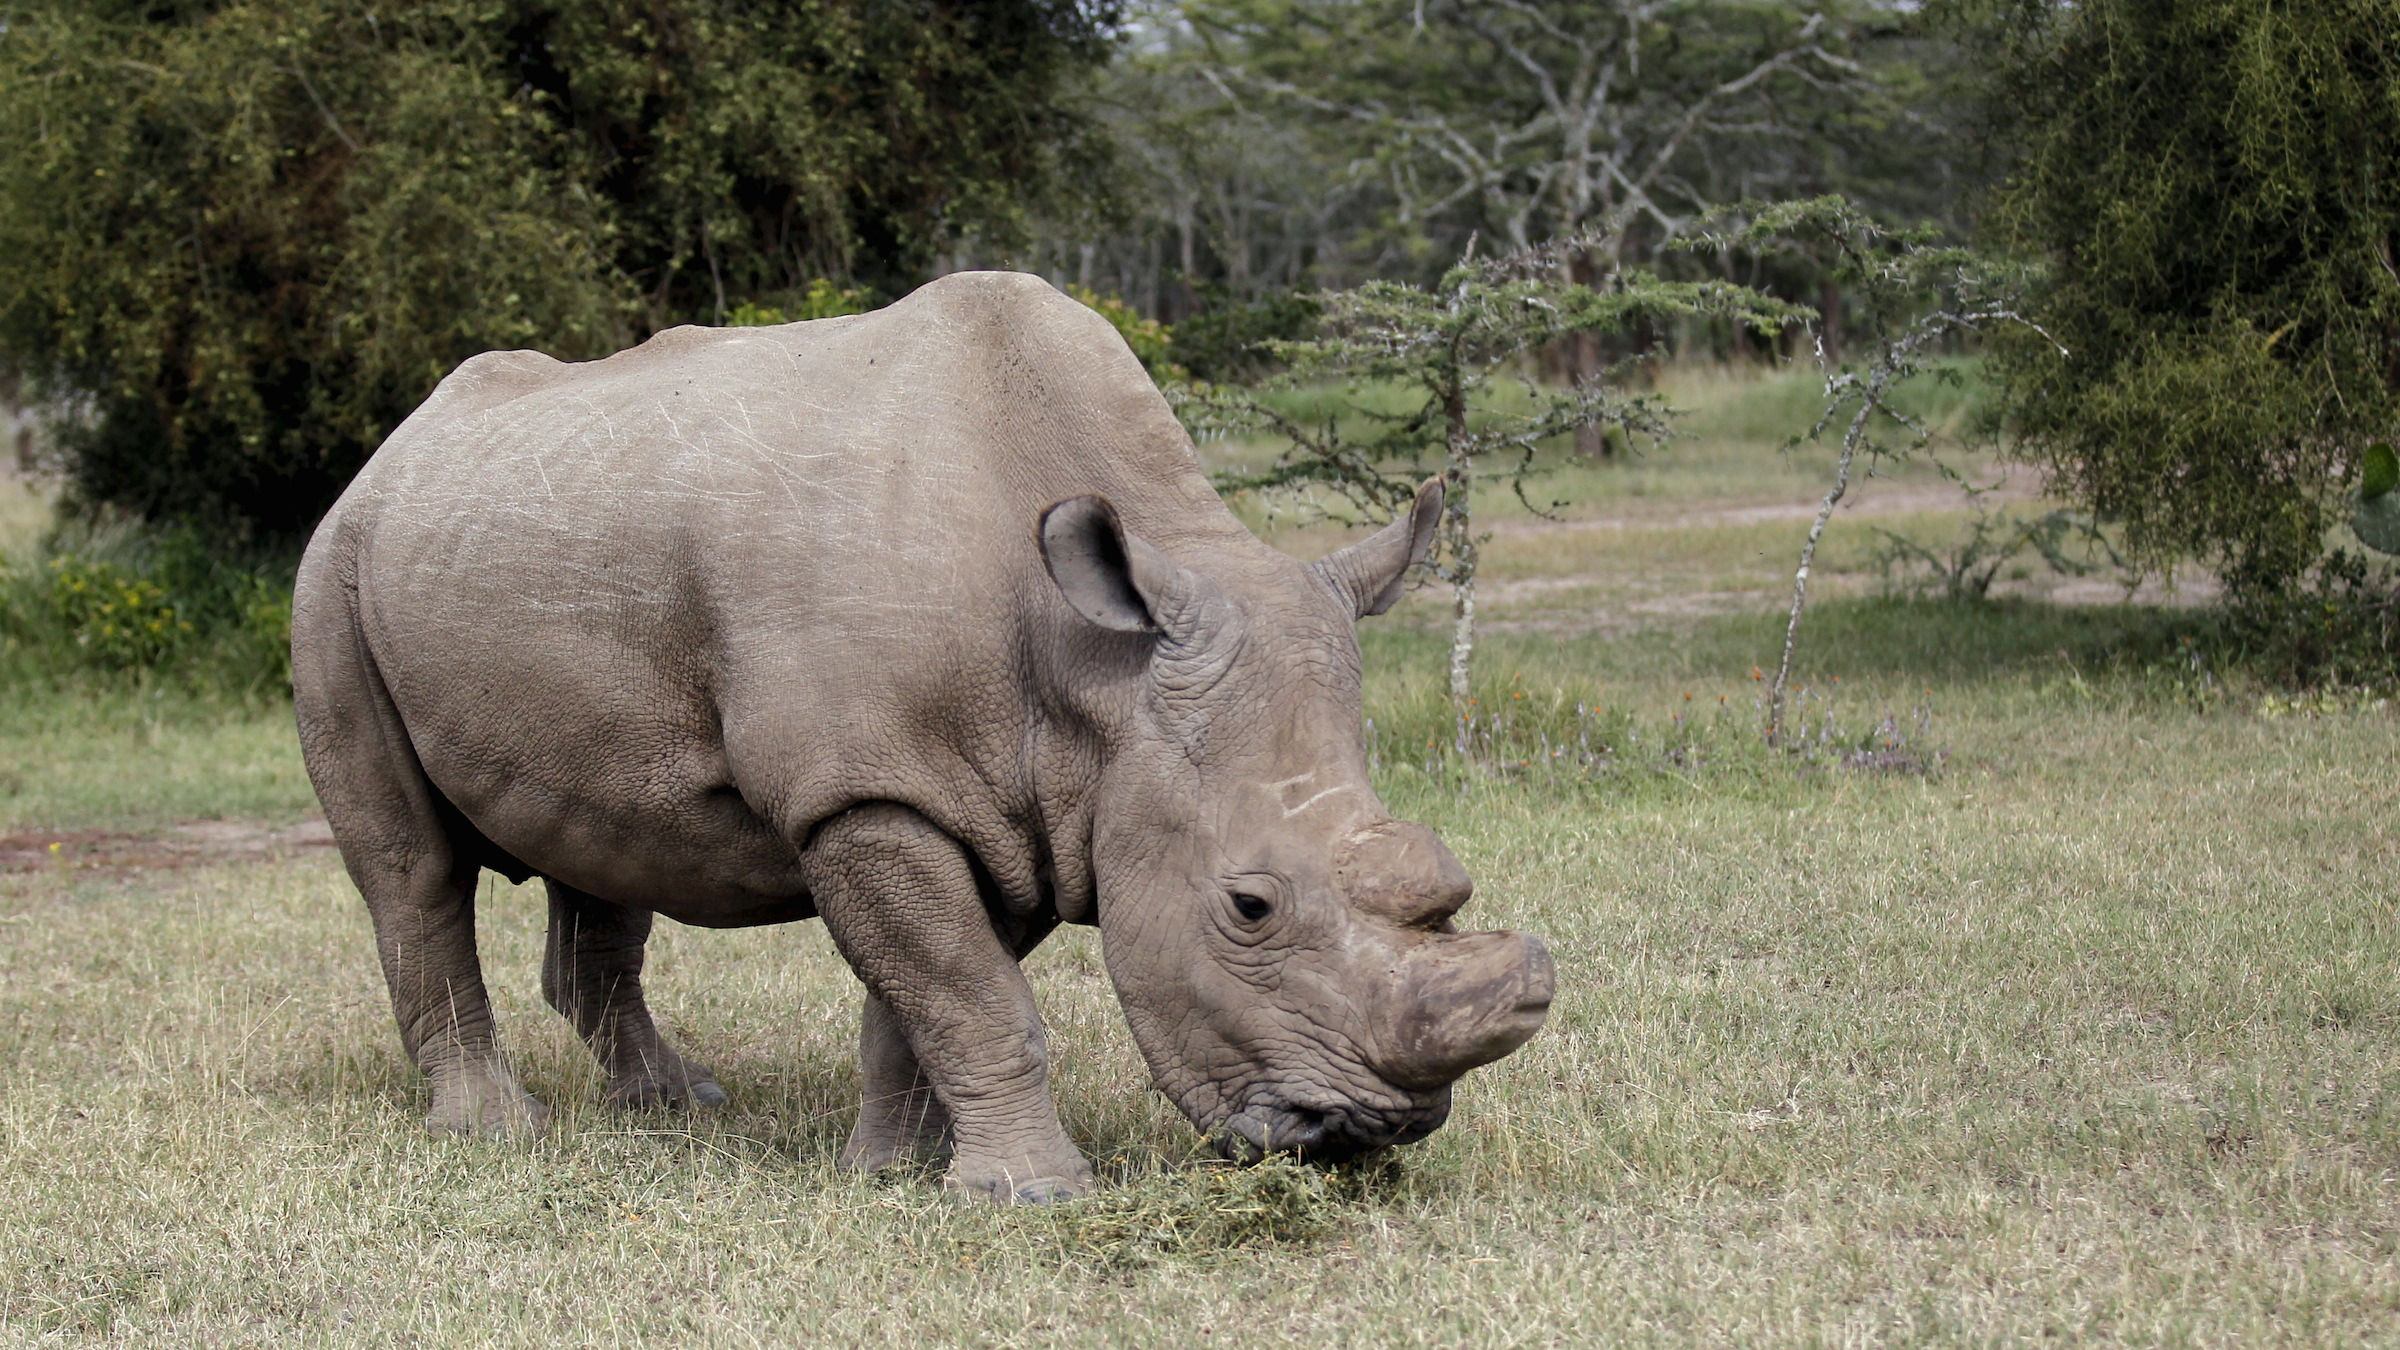 The last surviving male northern white rhino named 'Sudan' grazes at the Ol Pejeta Conservancy in Laikipia national park, Kenya June 14, 2015. A cricket tournament was hosted at the home of the last surviving male northern white rhino, and hopes to raise awareness of the plight of endangered animals and the need for community involvement in conservation.